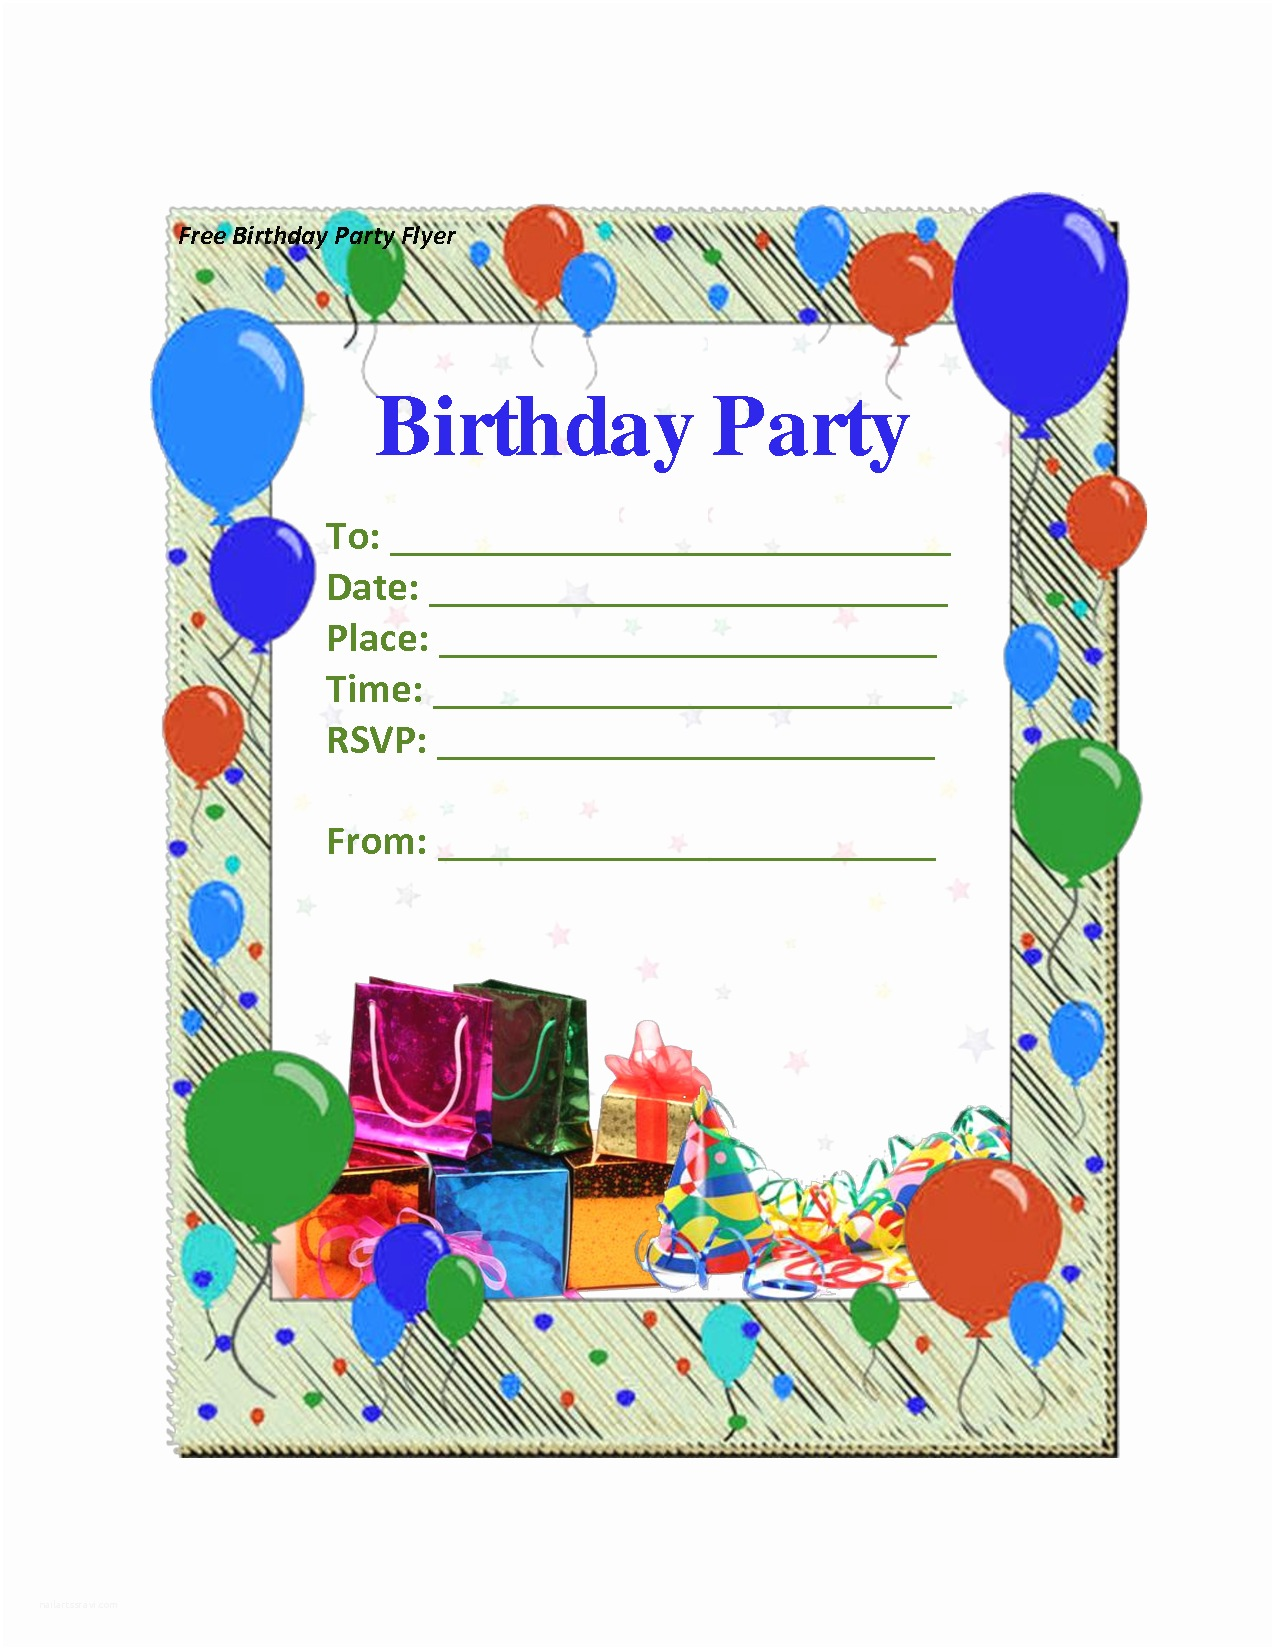 Design Party Invitations Birthday Party Invitation Templates